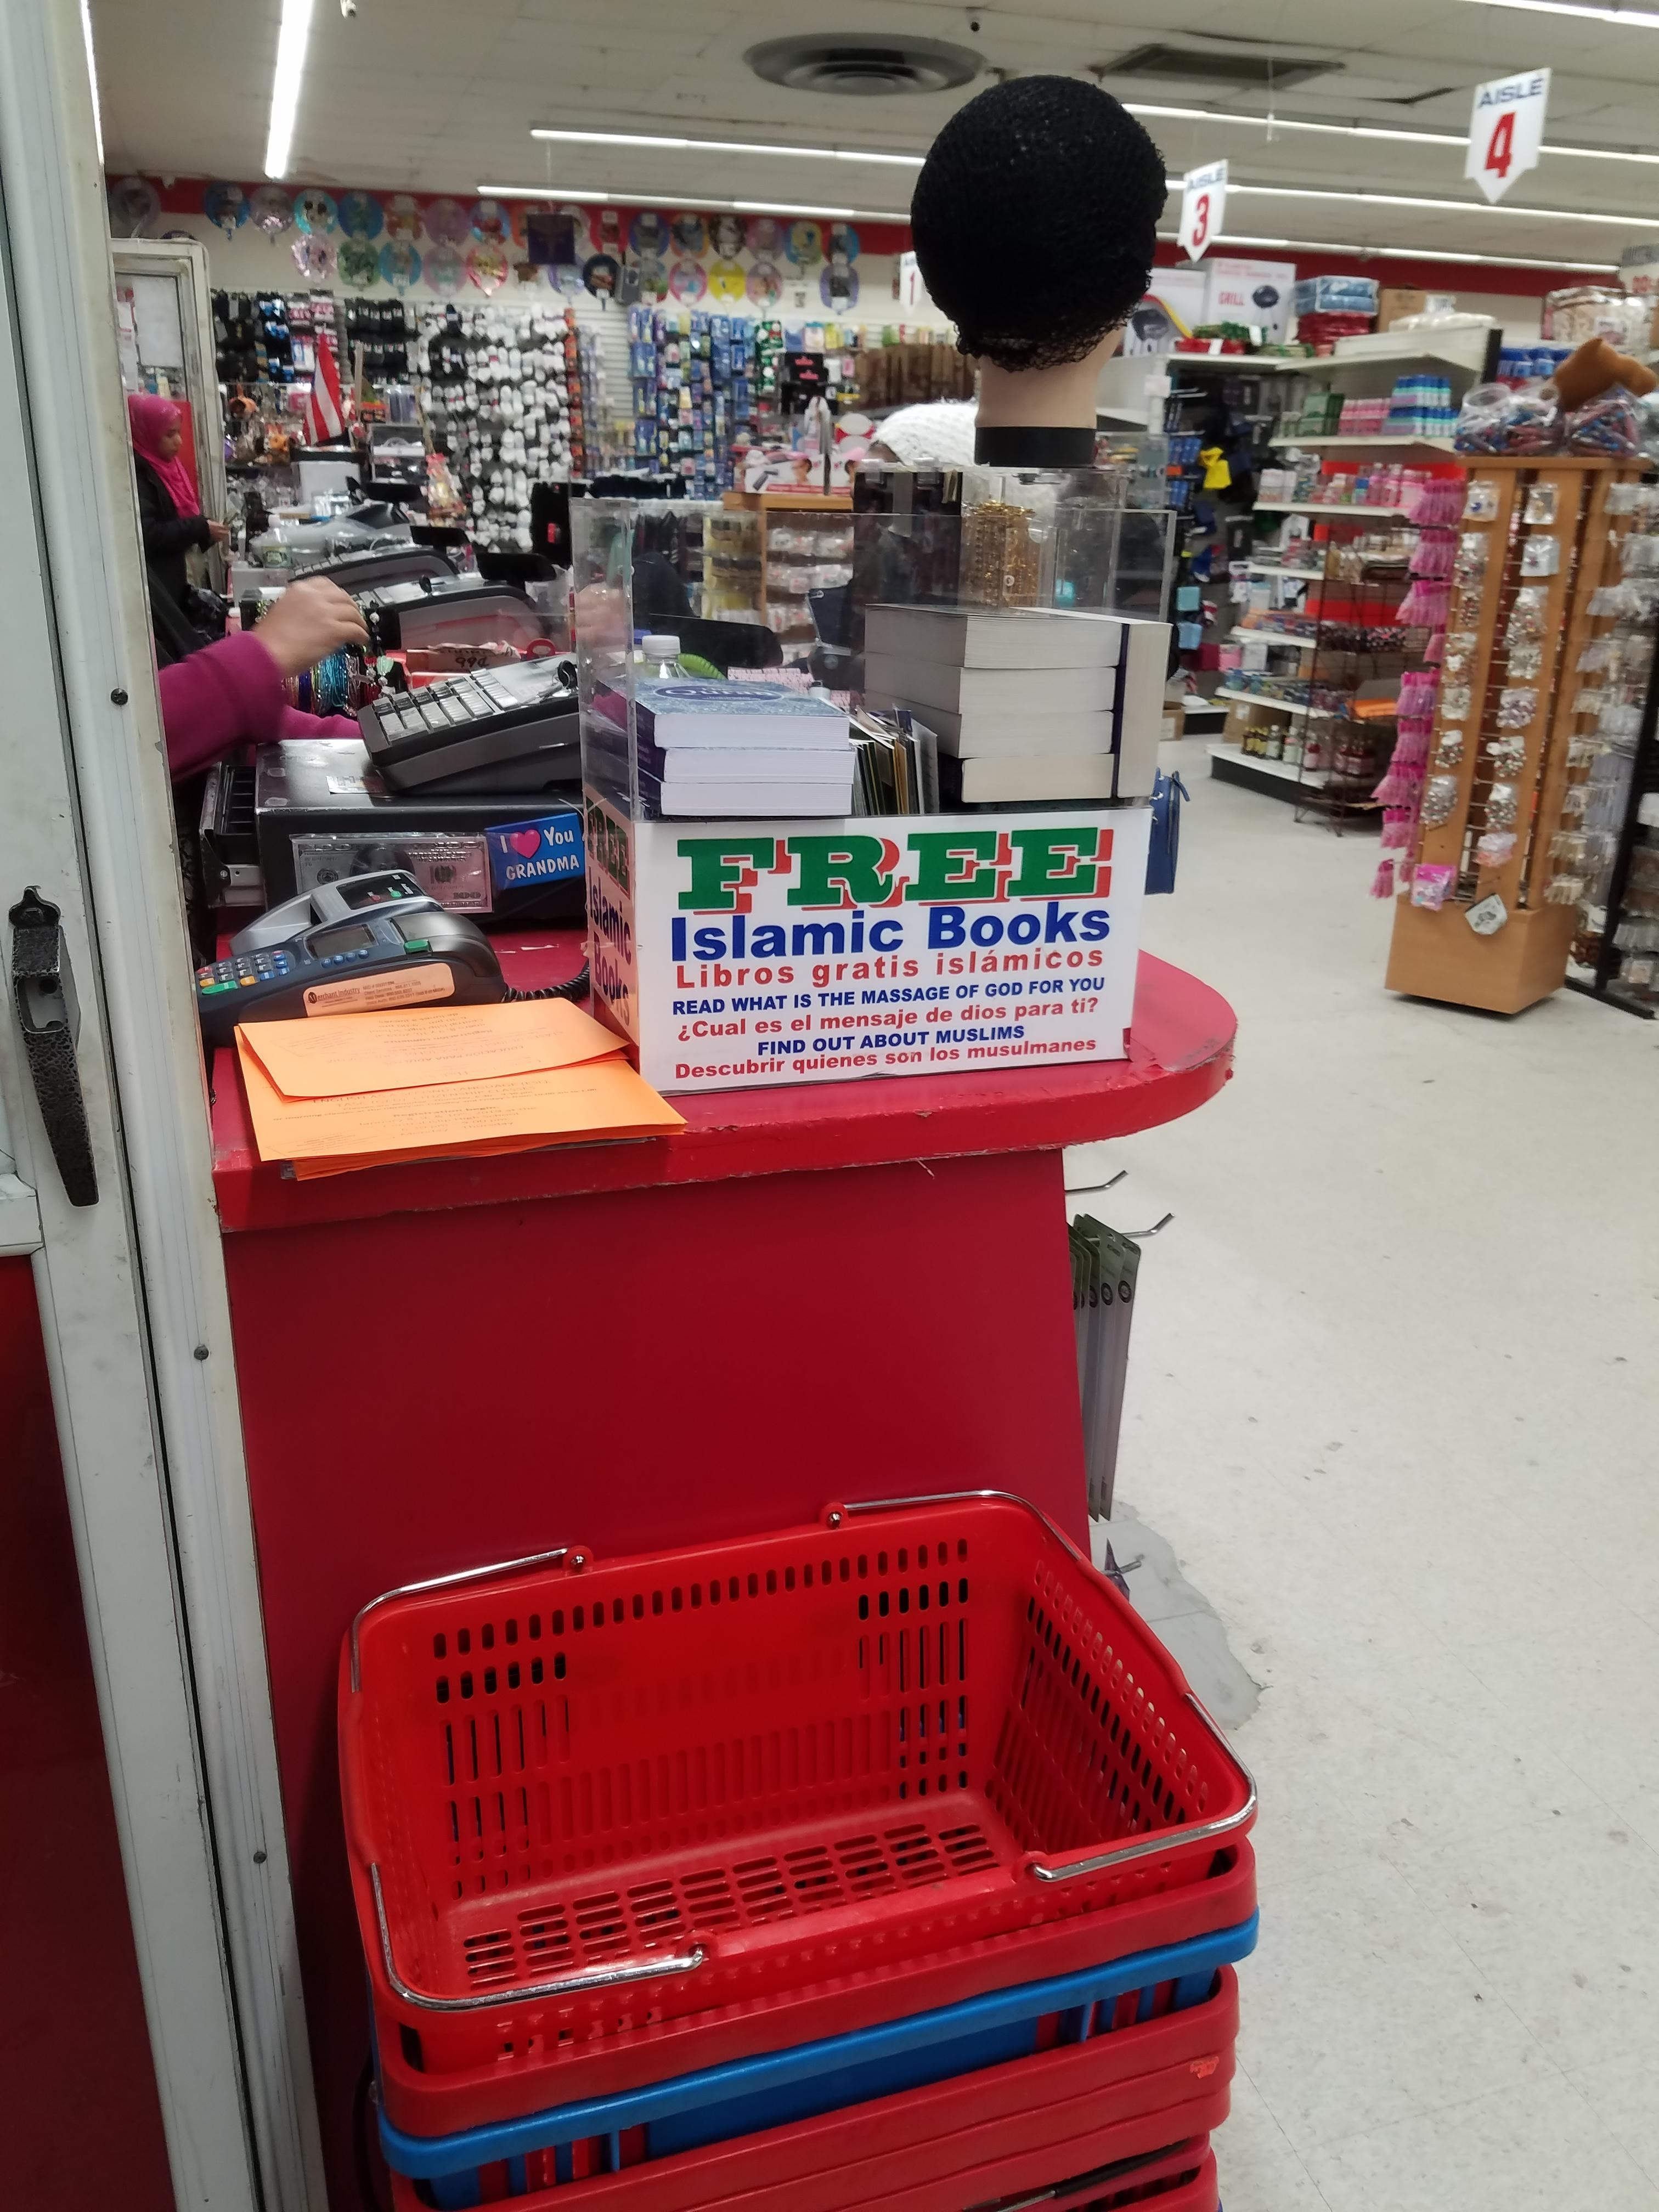 Libros Islamicos Gratis Free Islamic Books At My Local Dollar Store Mildlyinteresting